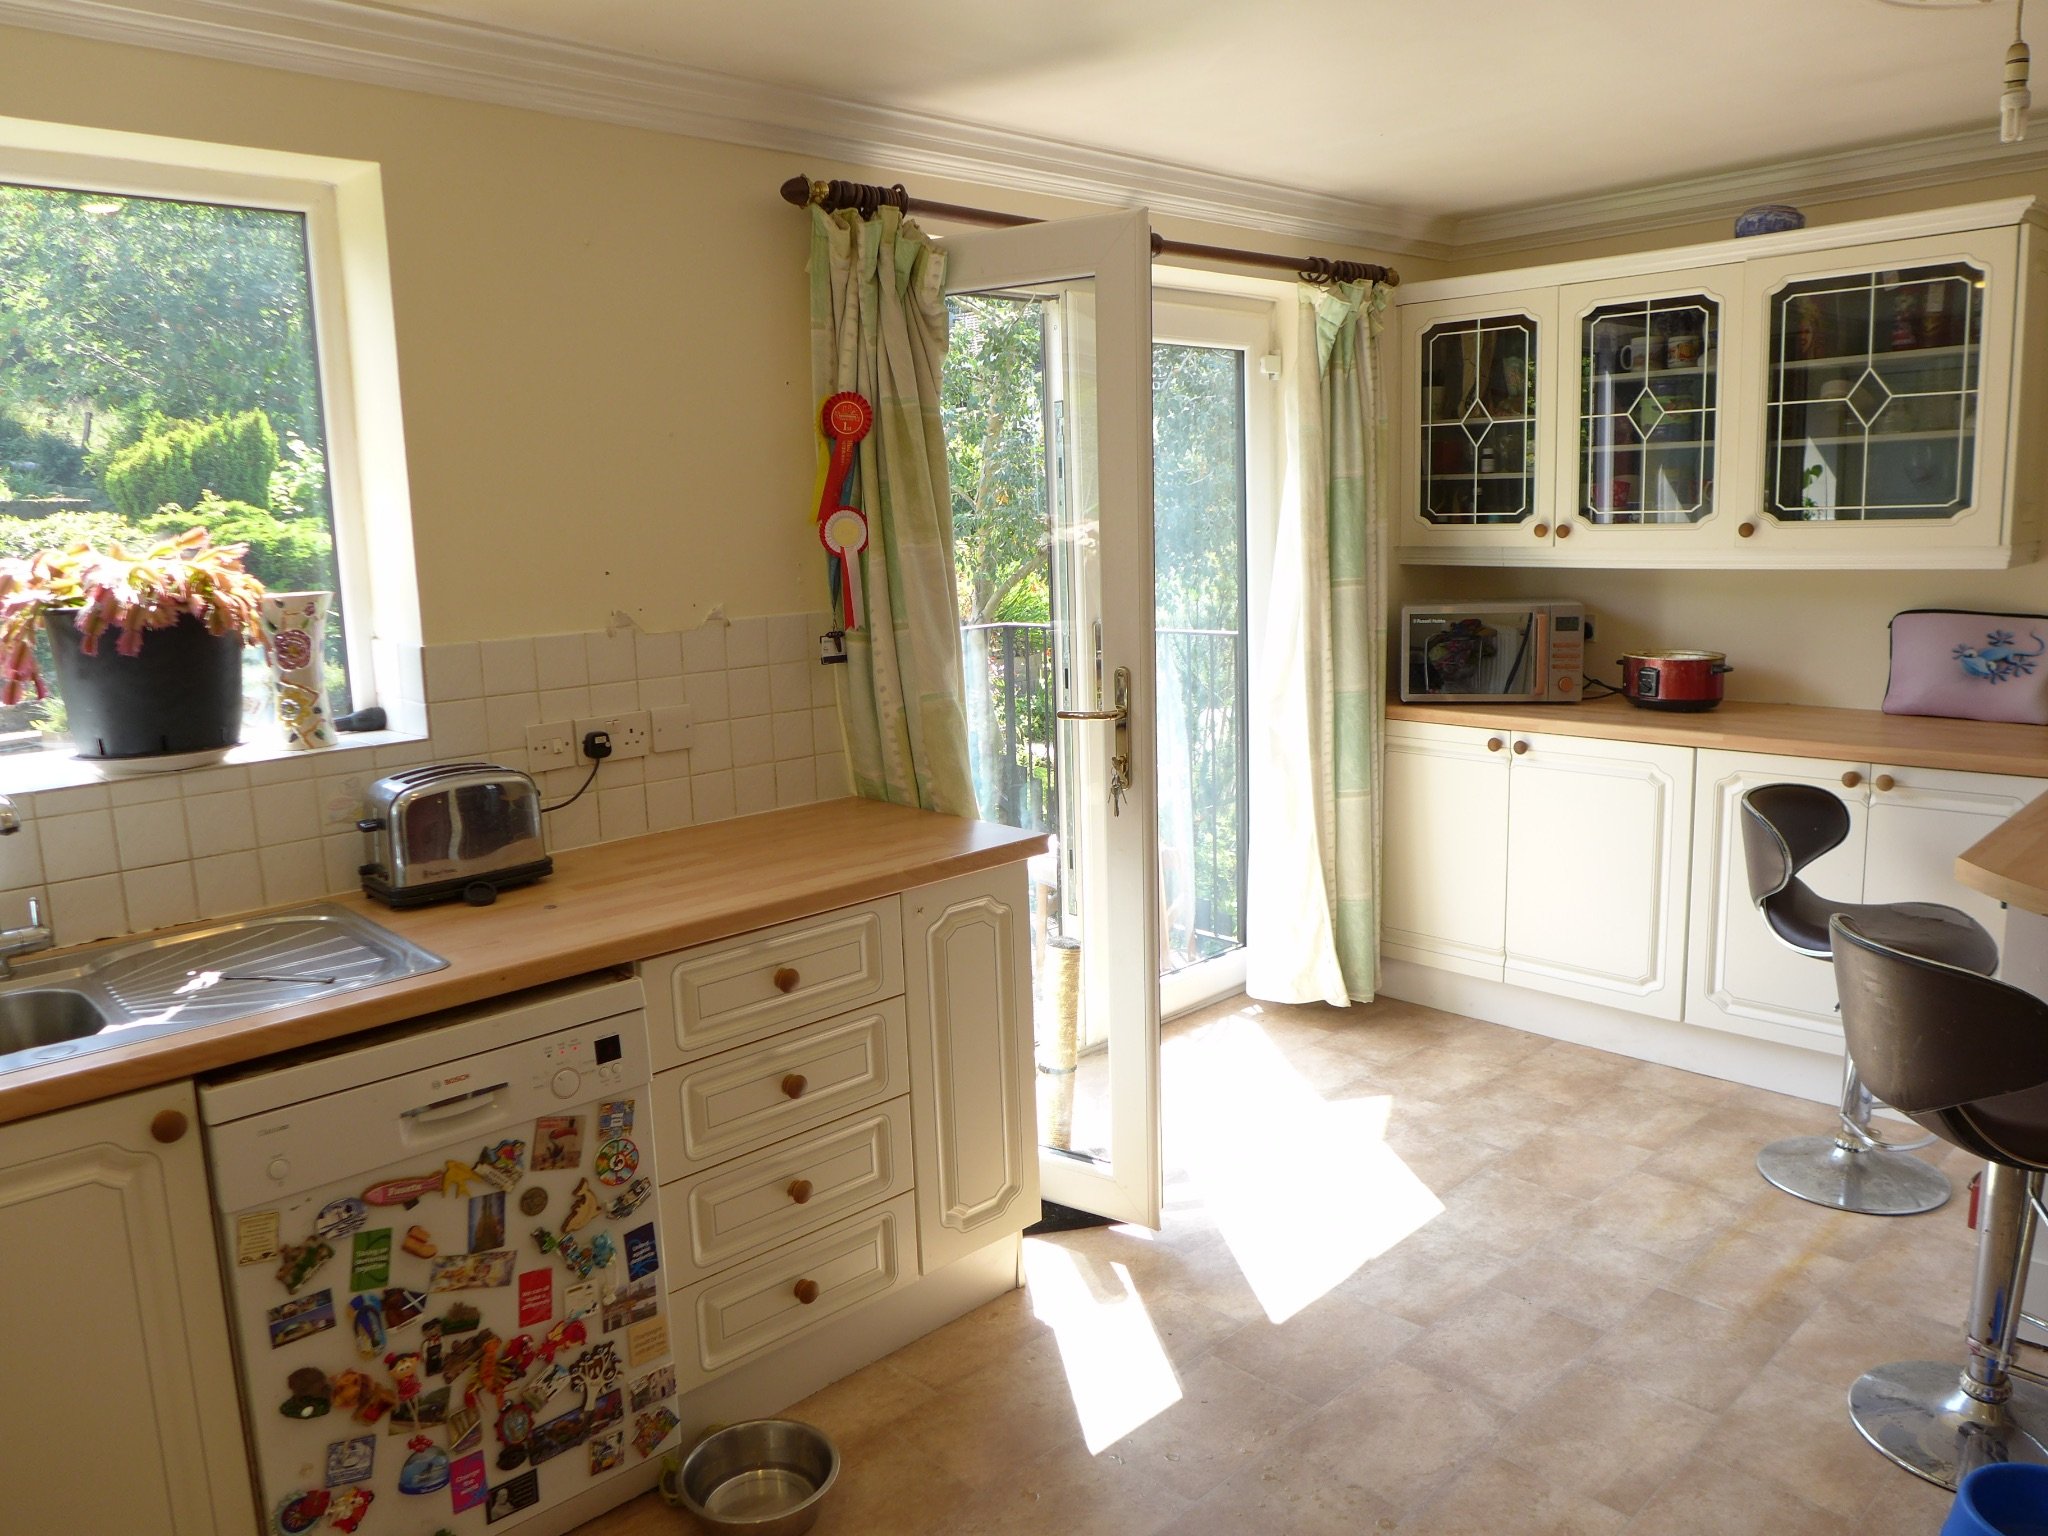 4 bedroom detached house For Sale in Todmorden - Photograph 7.